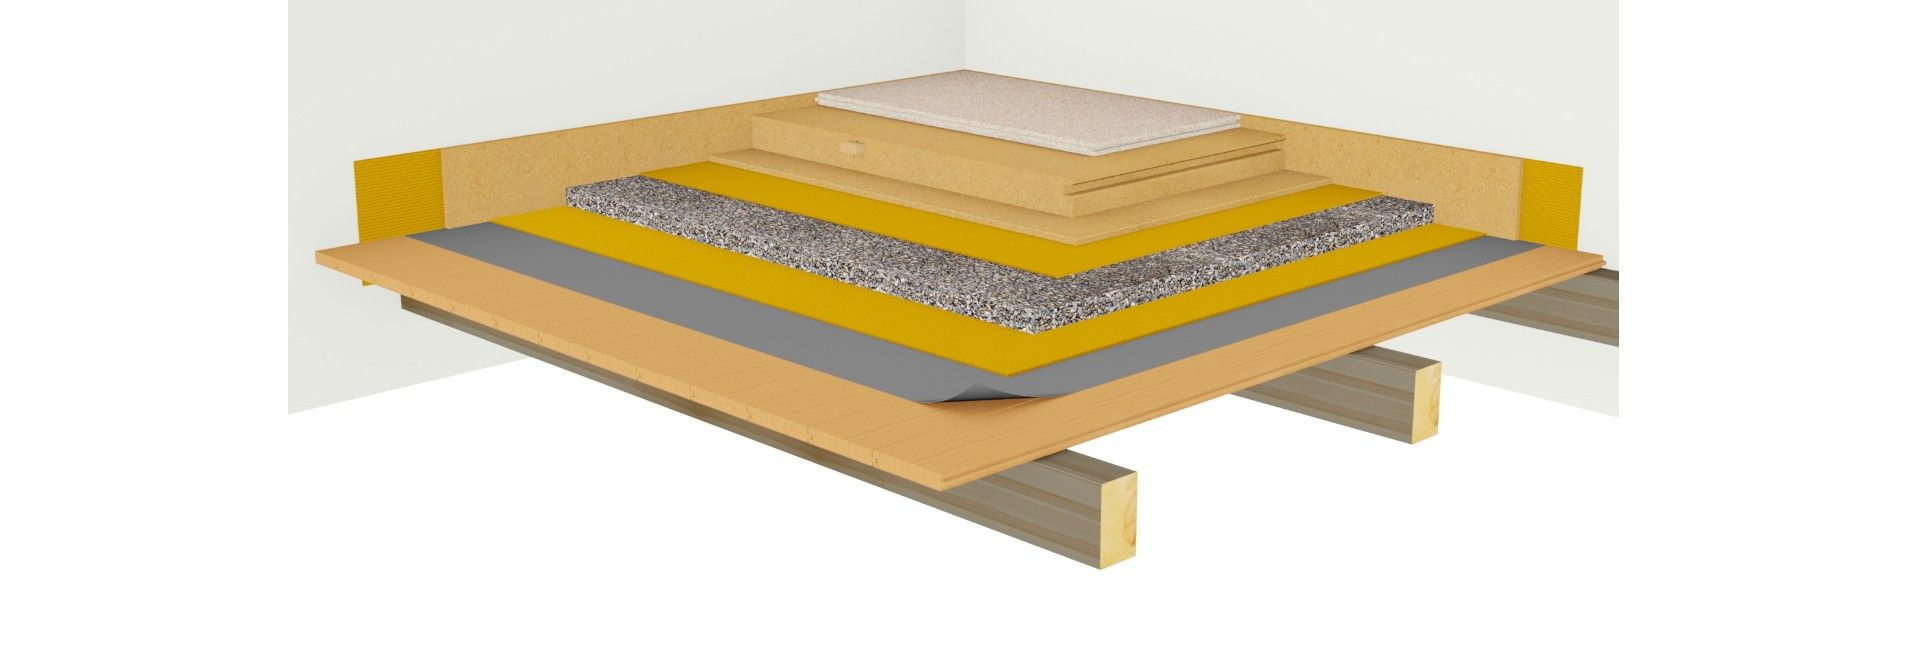 Optimized footfall sound insulation over floorboards